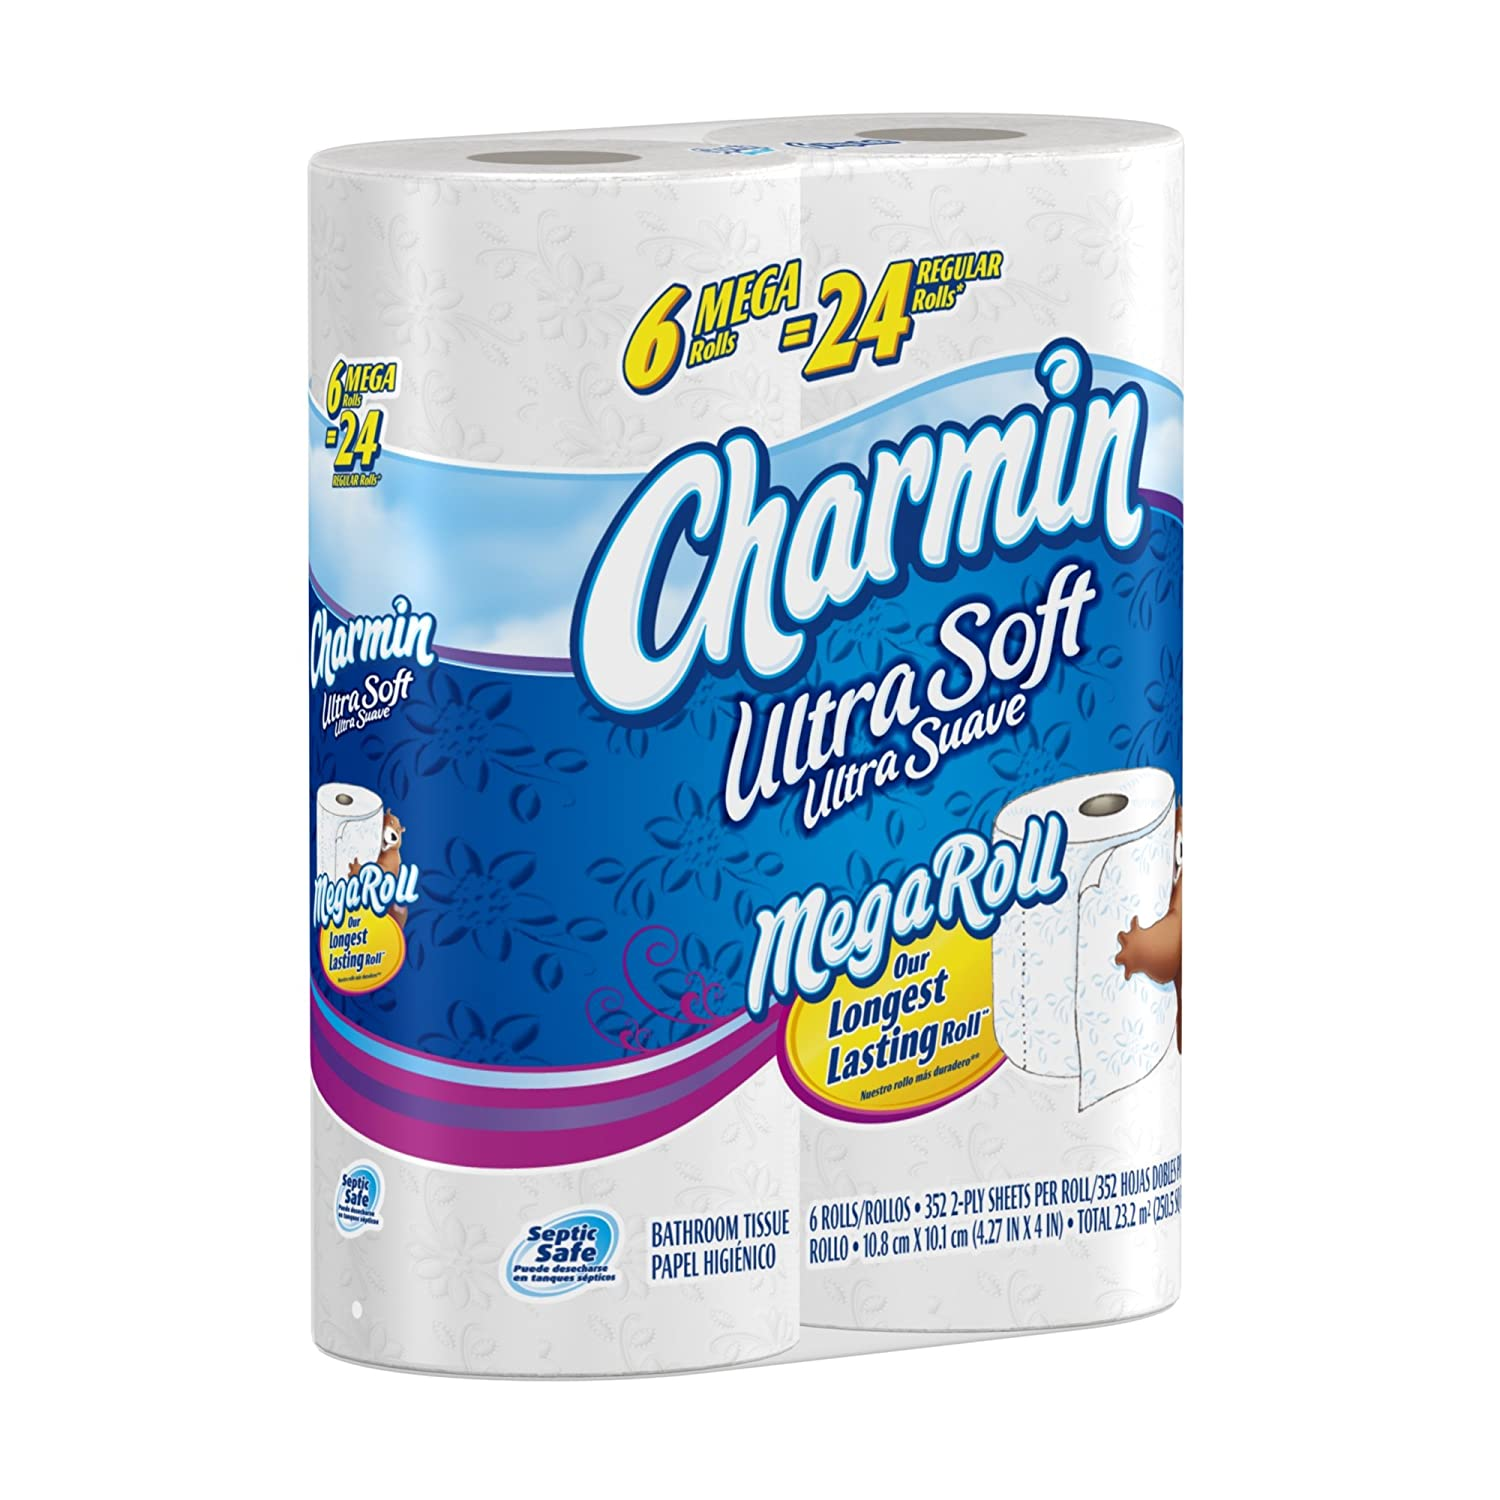 Charmin Ultra Soft Toilet Paper 6 Mega Rolls $6.97